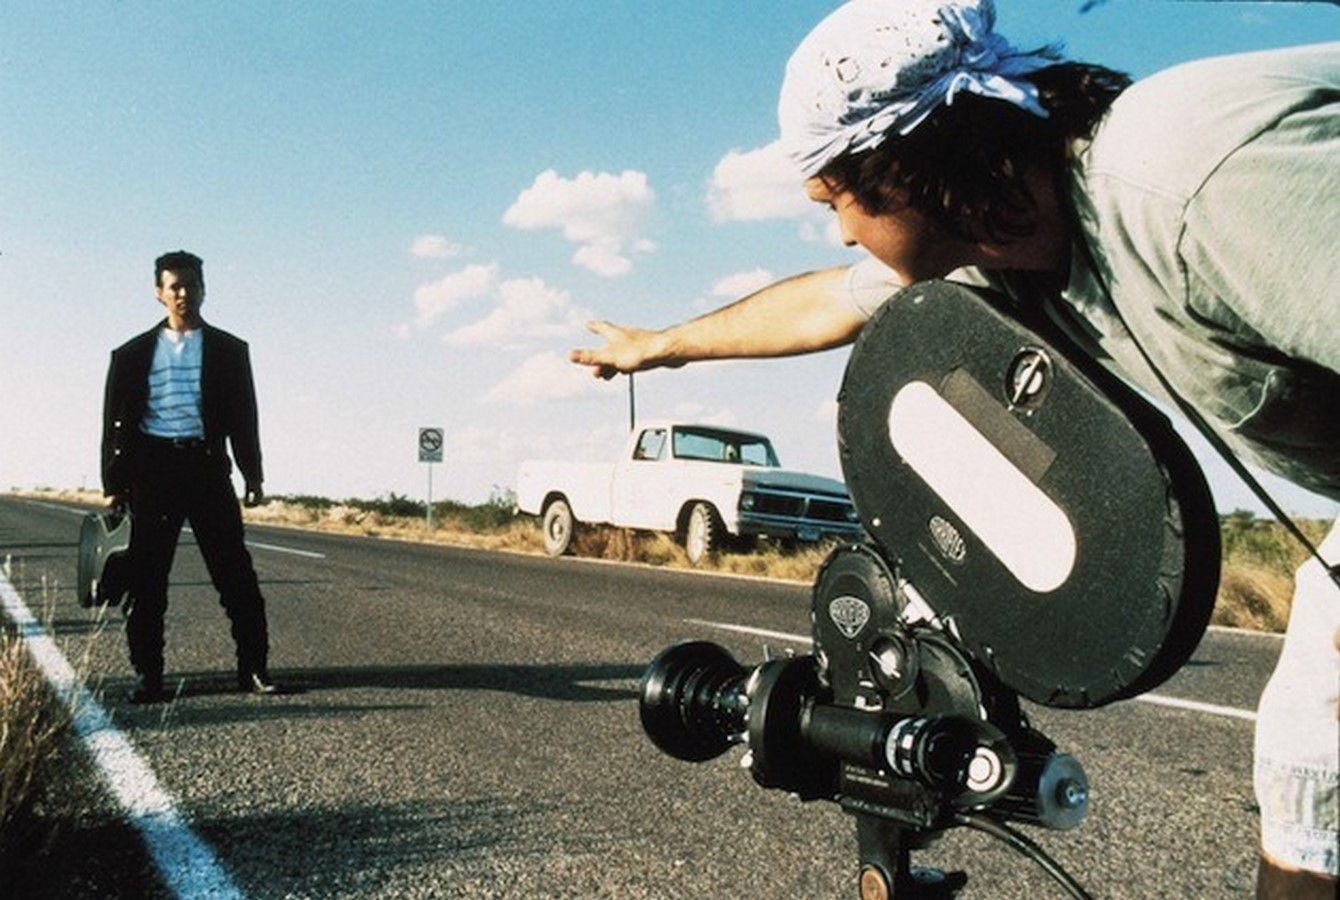 10 Tips For Filmmakers on a Budget - Sheet1